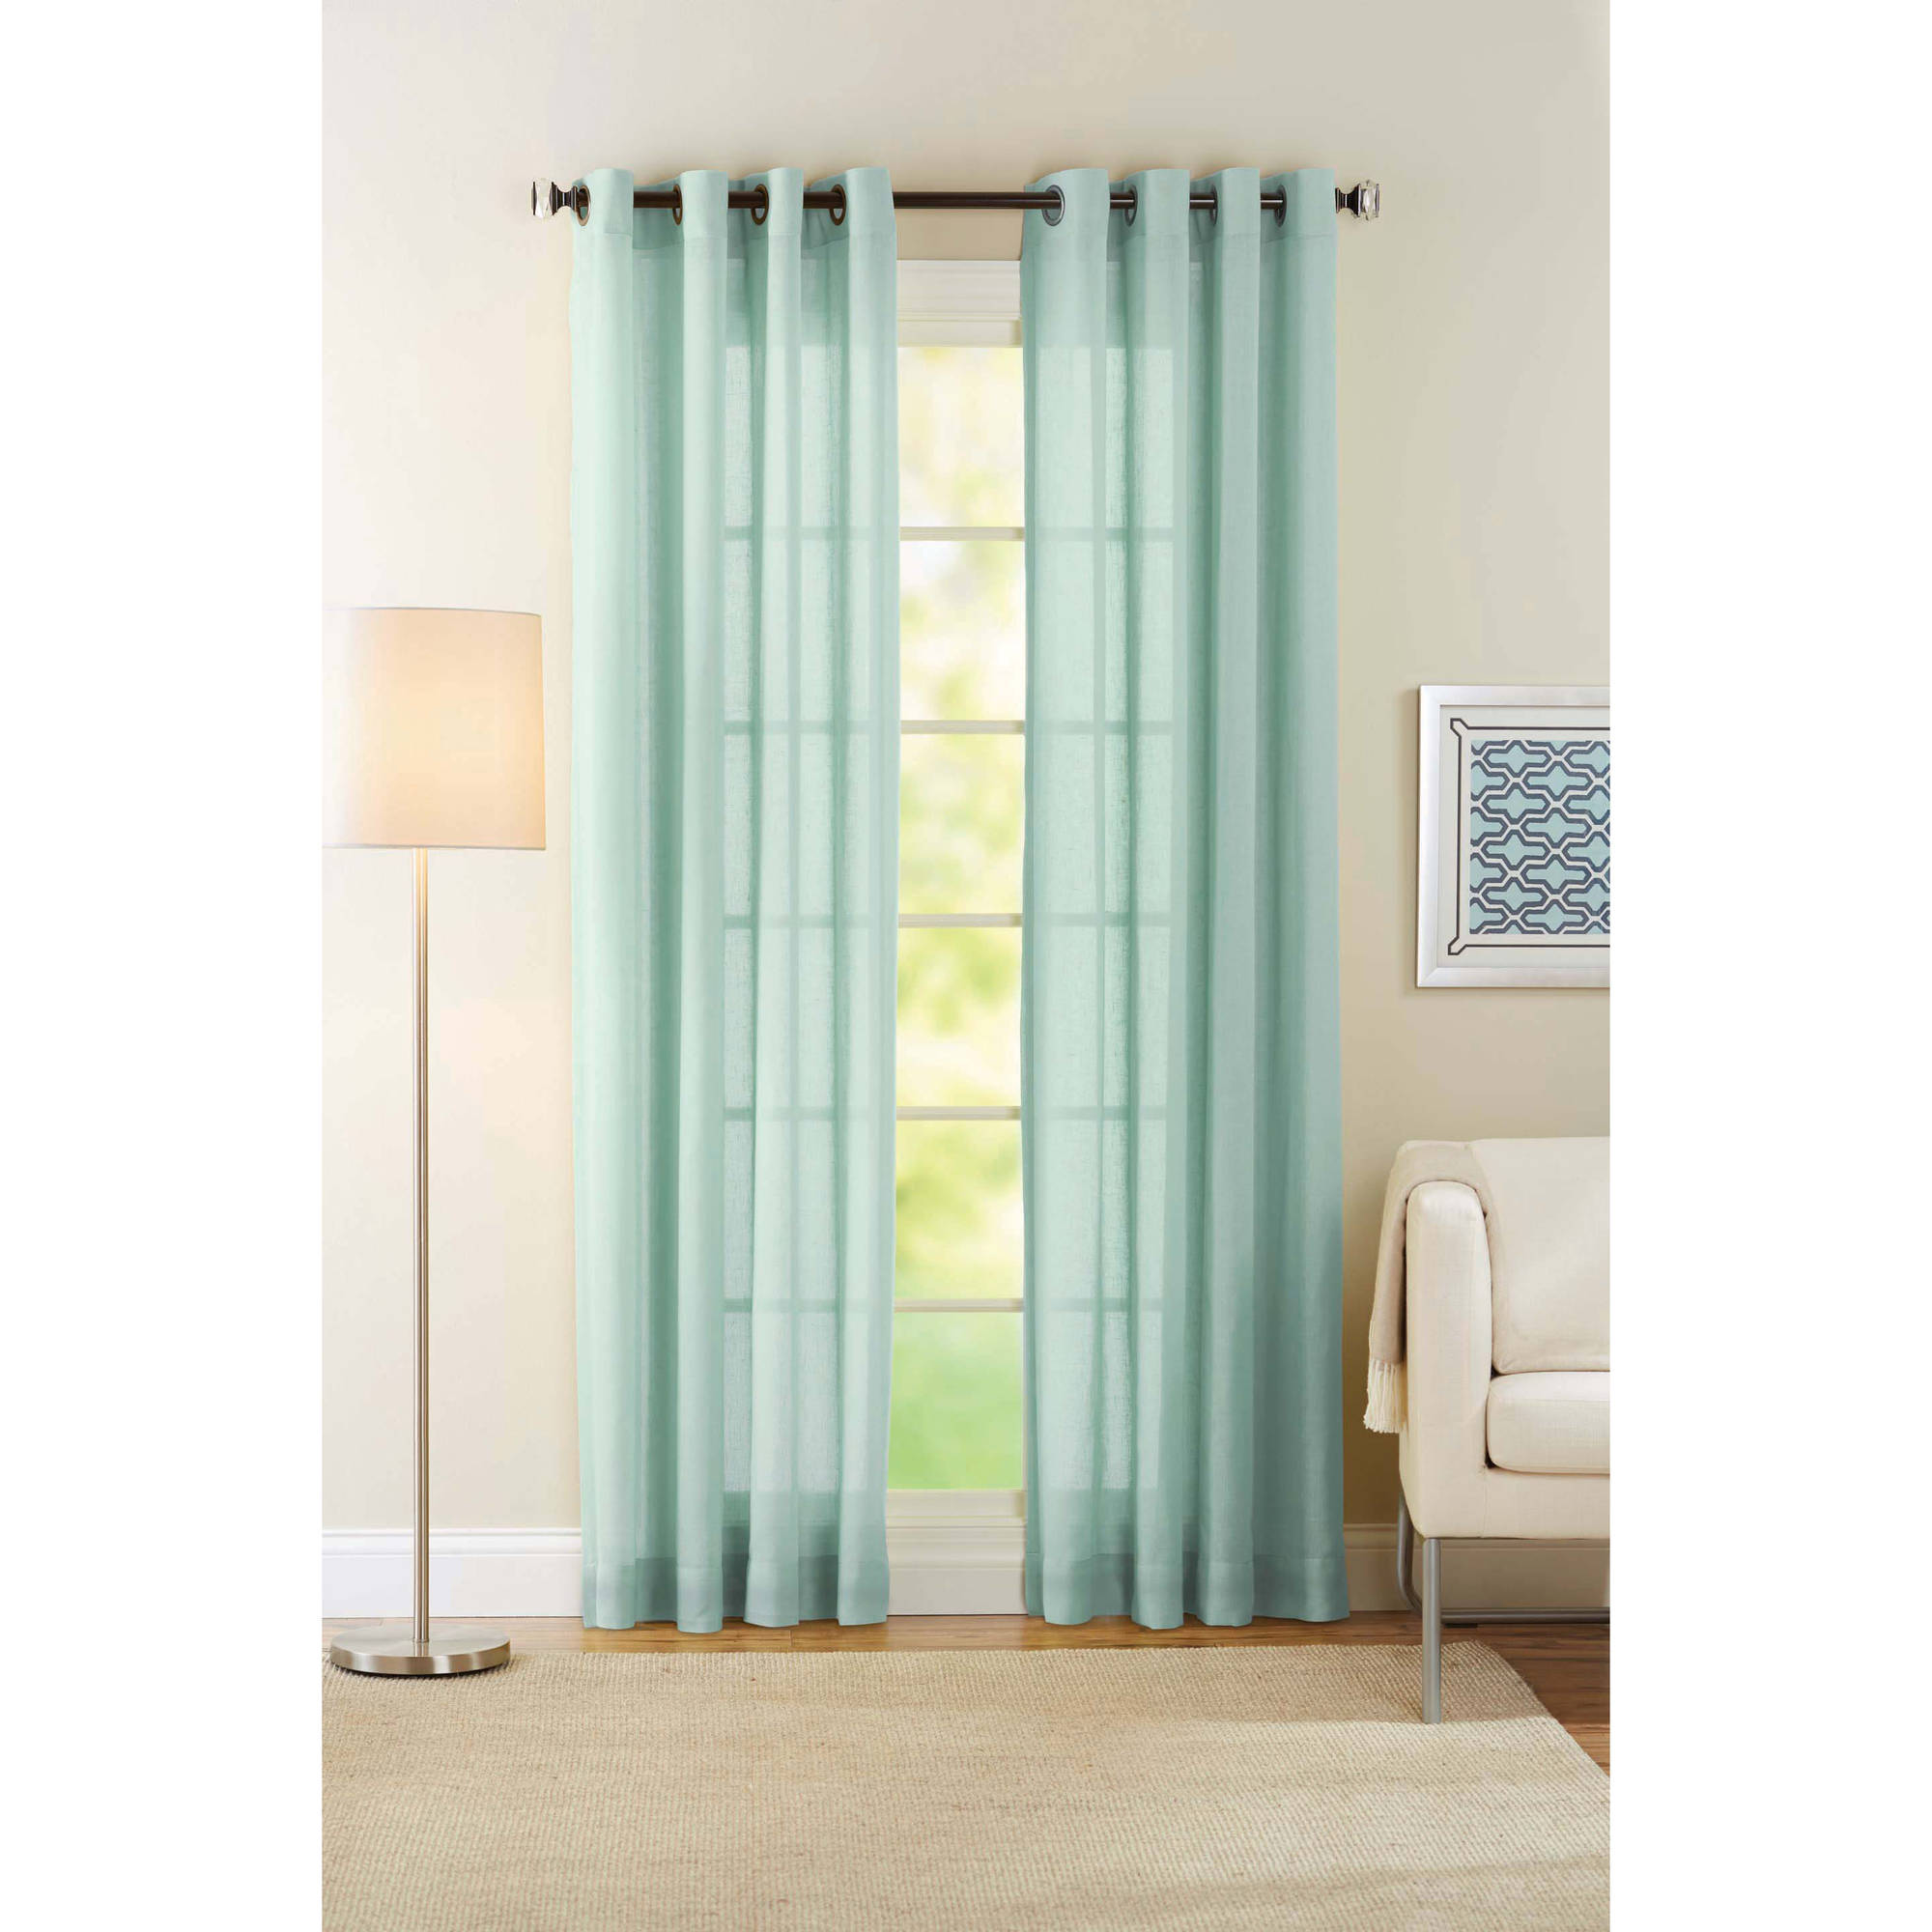 . Better Homes and Gardens Semi Sheer Window Curtain   Walmart com